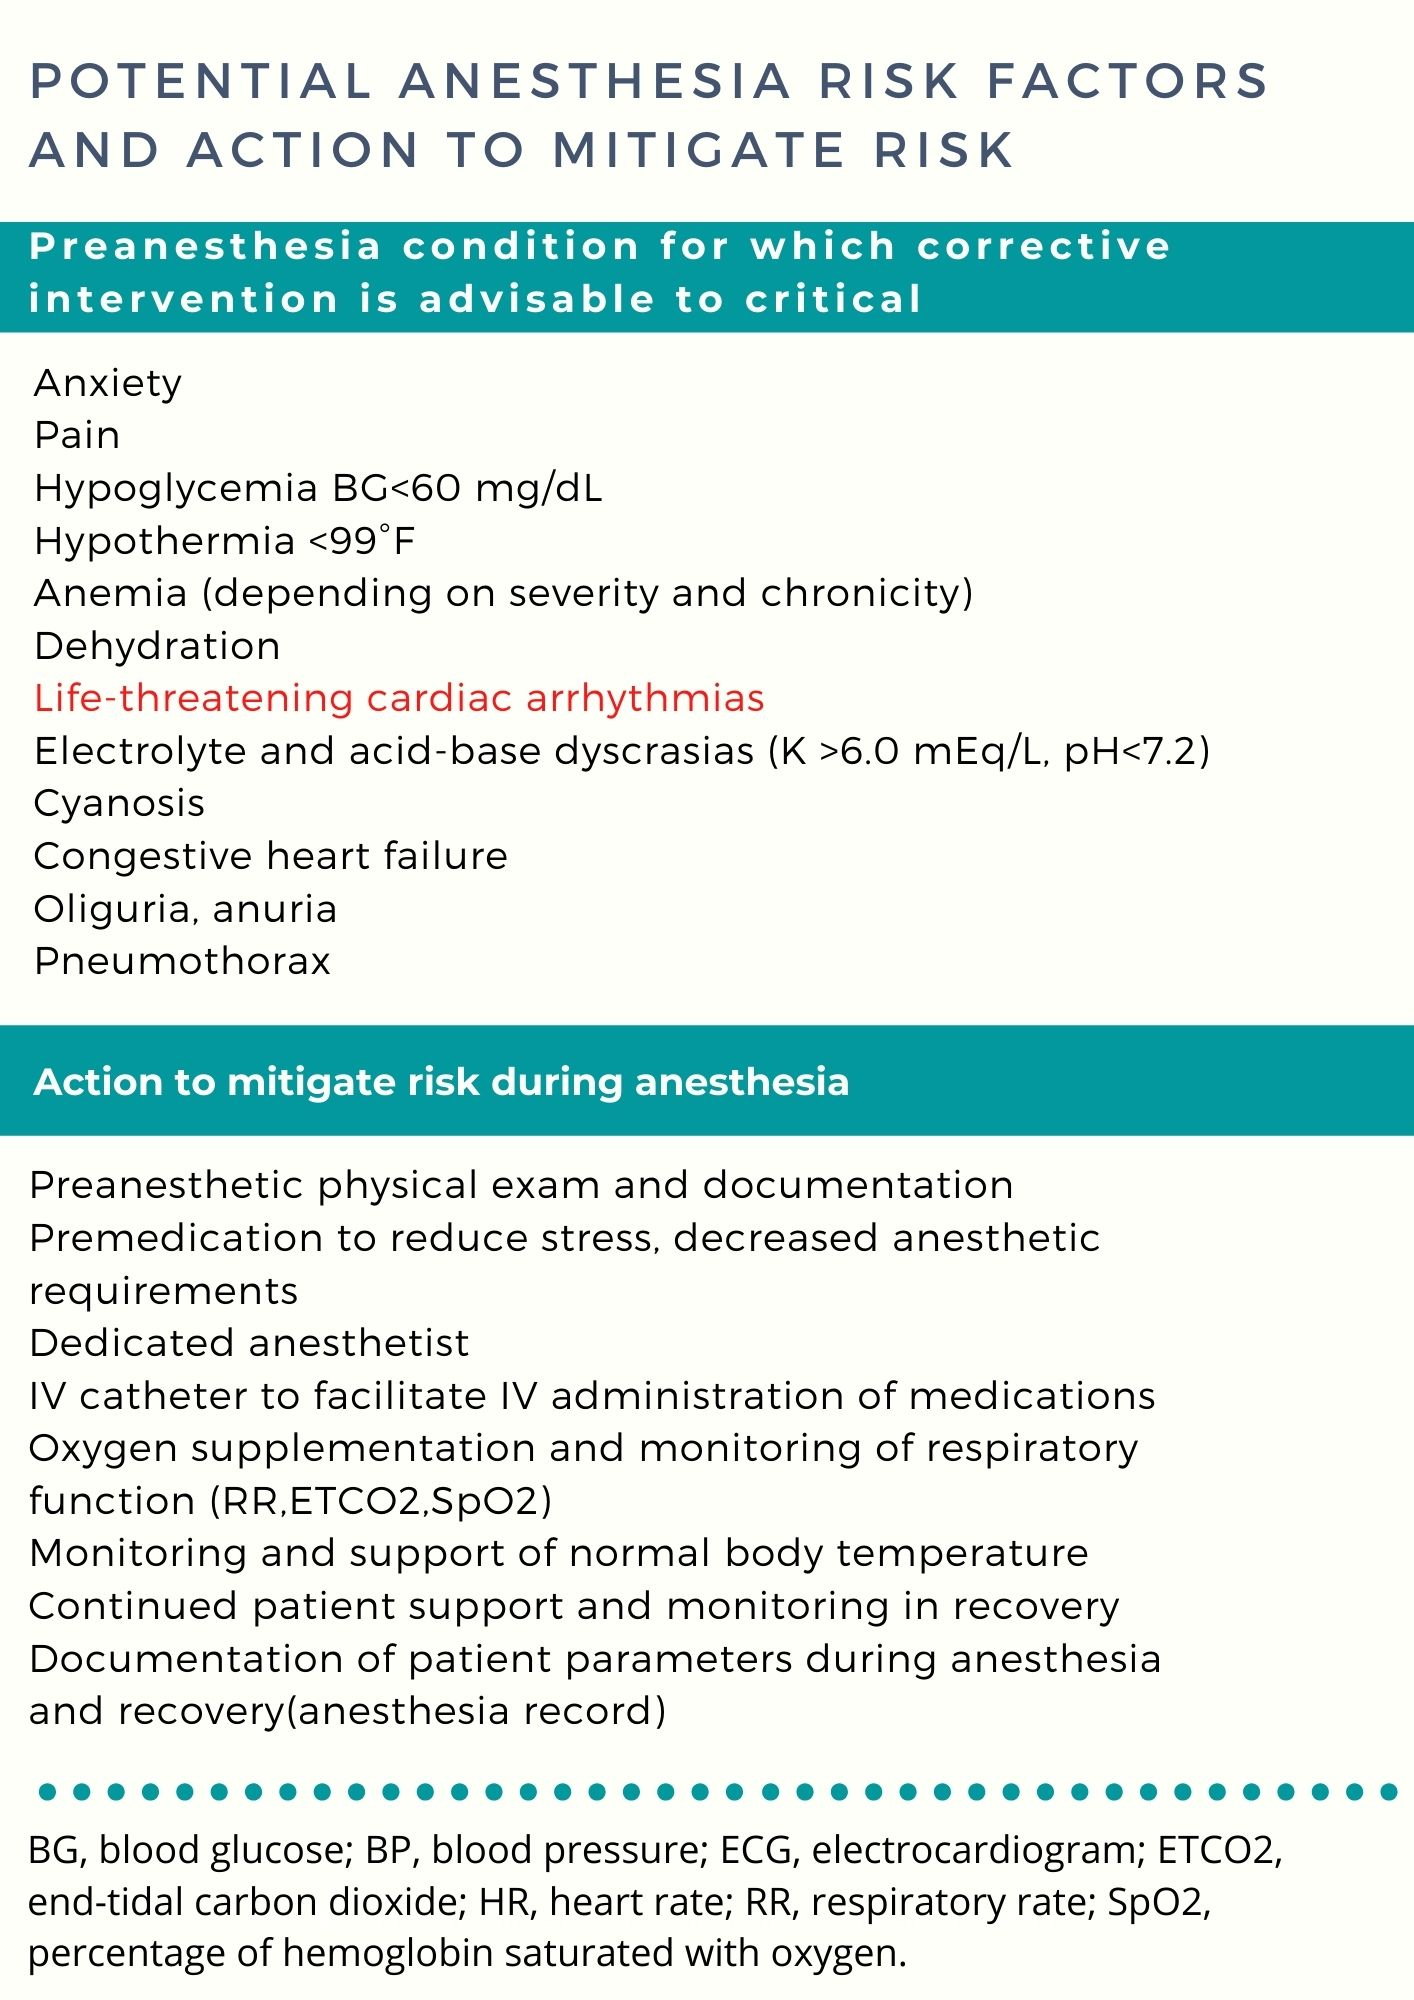 Potential Anesthesia risk factors and action to mitigate risk